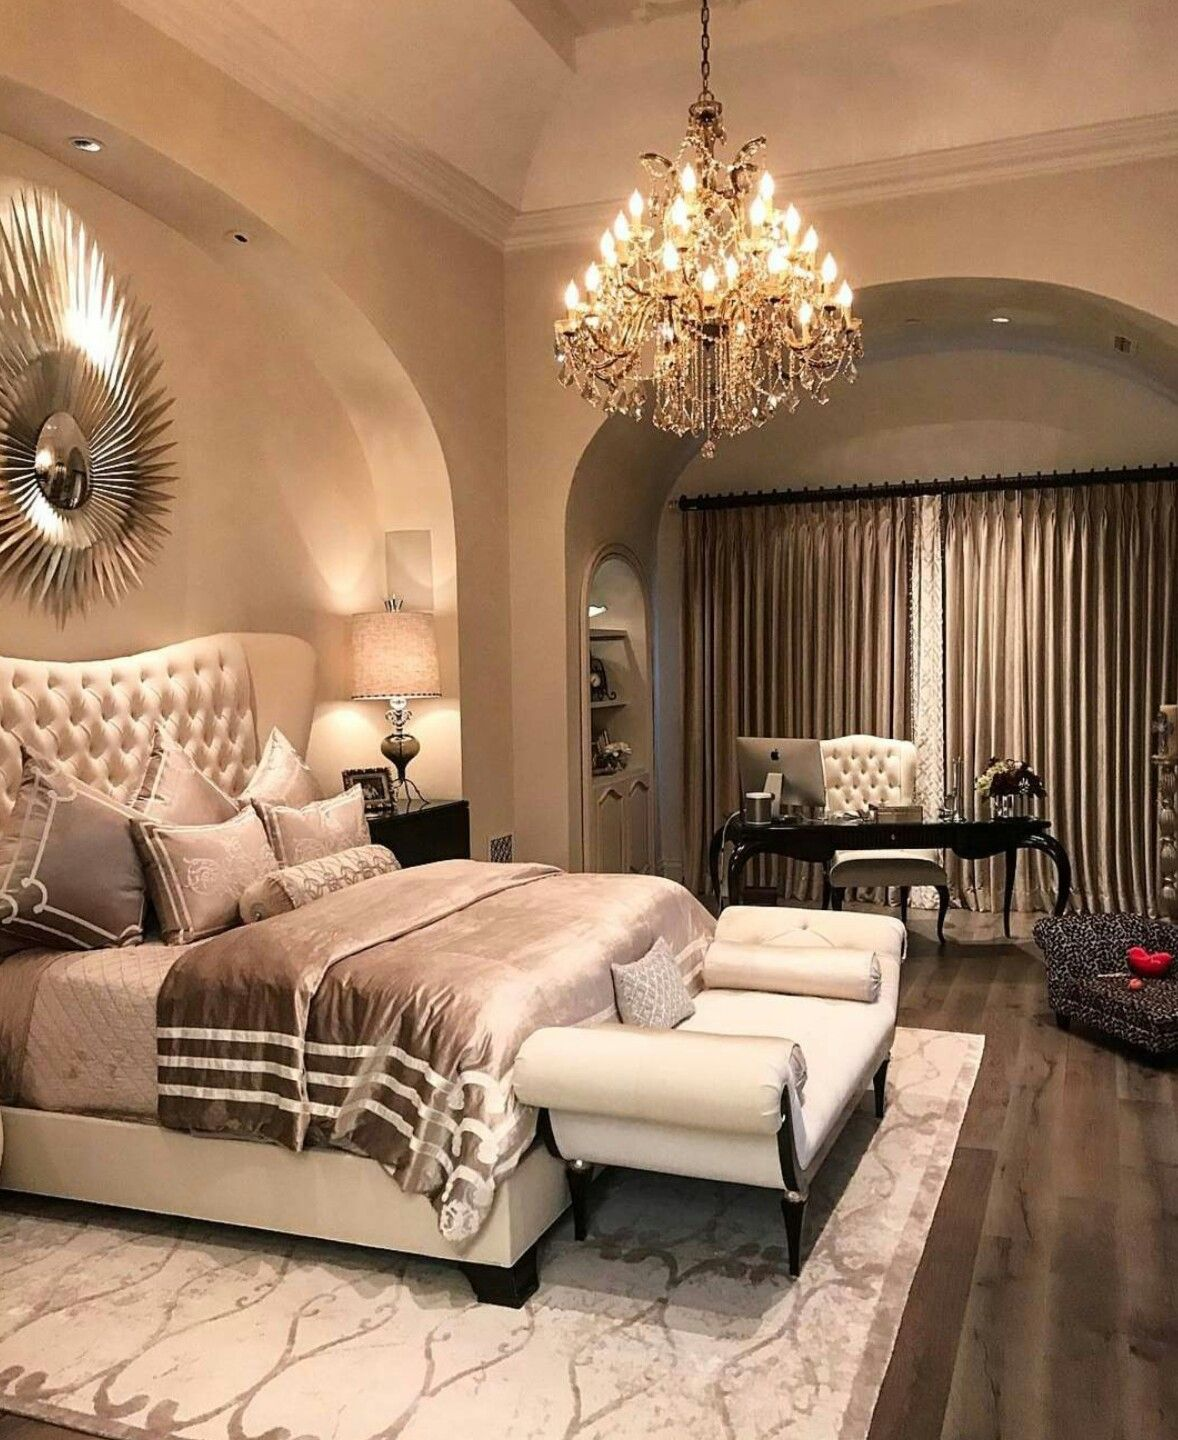 I just like the bed bedding end of bed couch not room design or